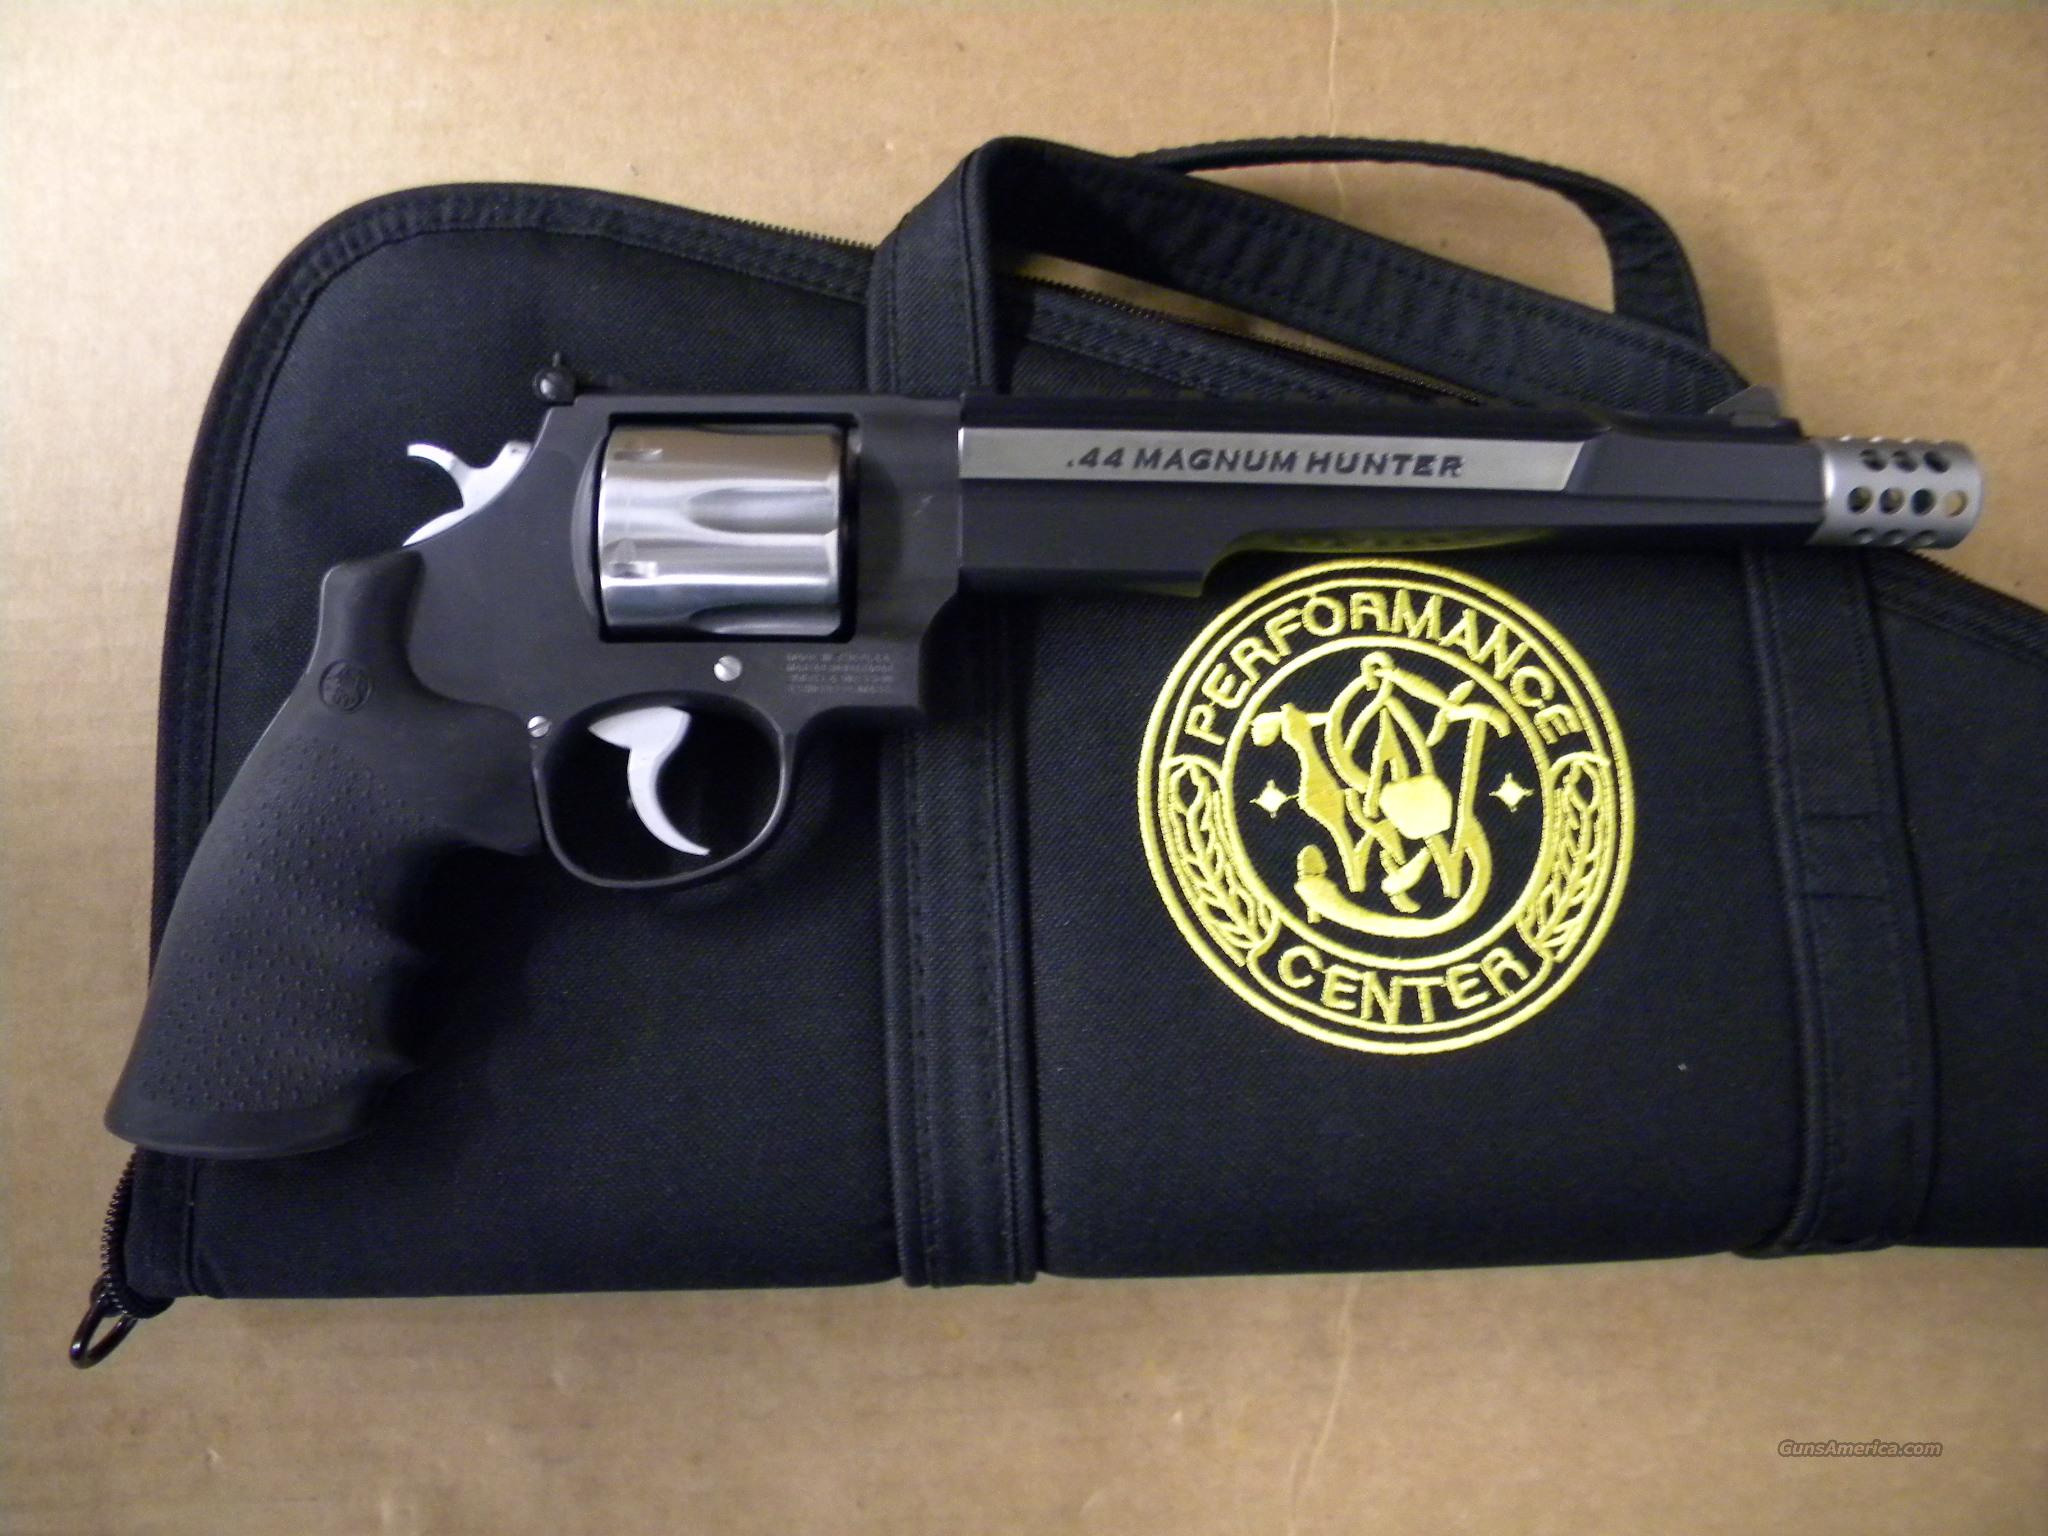 Smith & Wesson Model 629 Performance Center Hunter .44 Magnum  Guns > Pistols > Smith & Wesson Revolvers > Model 629